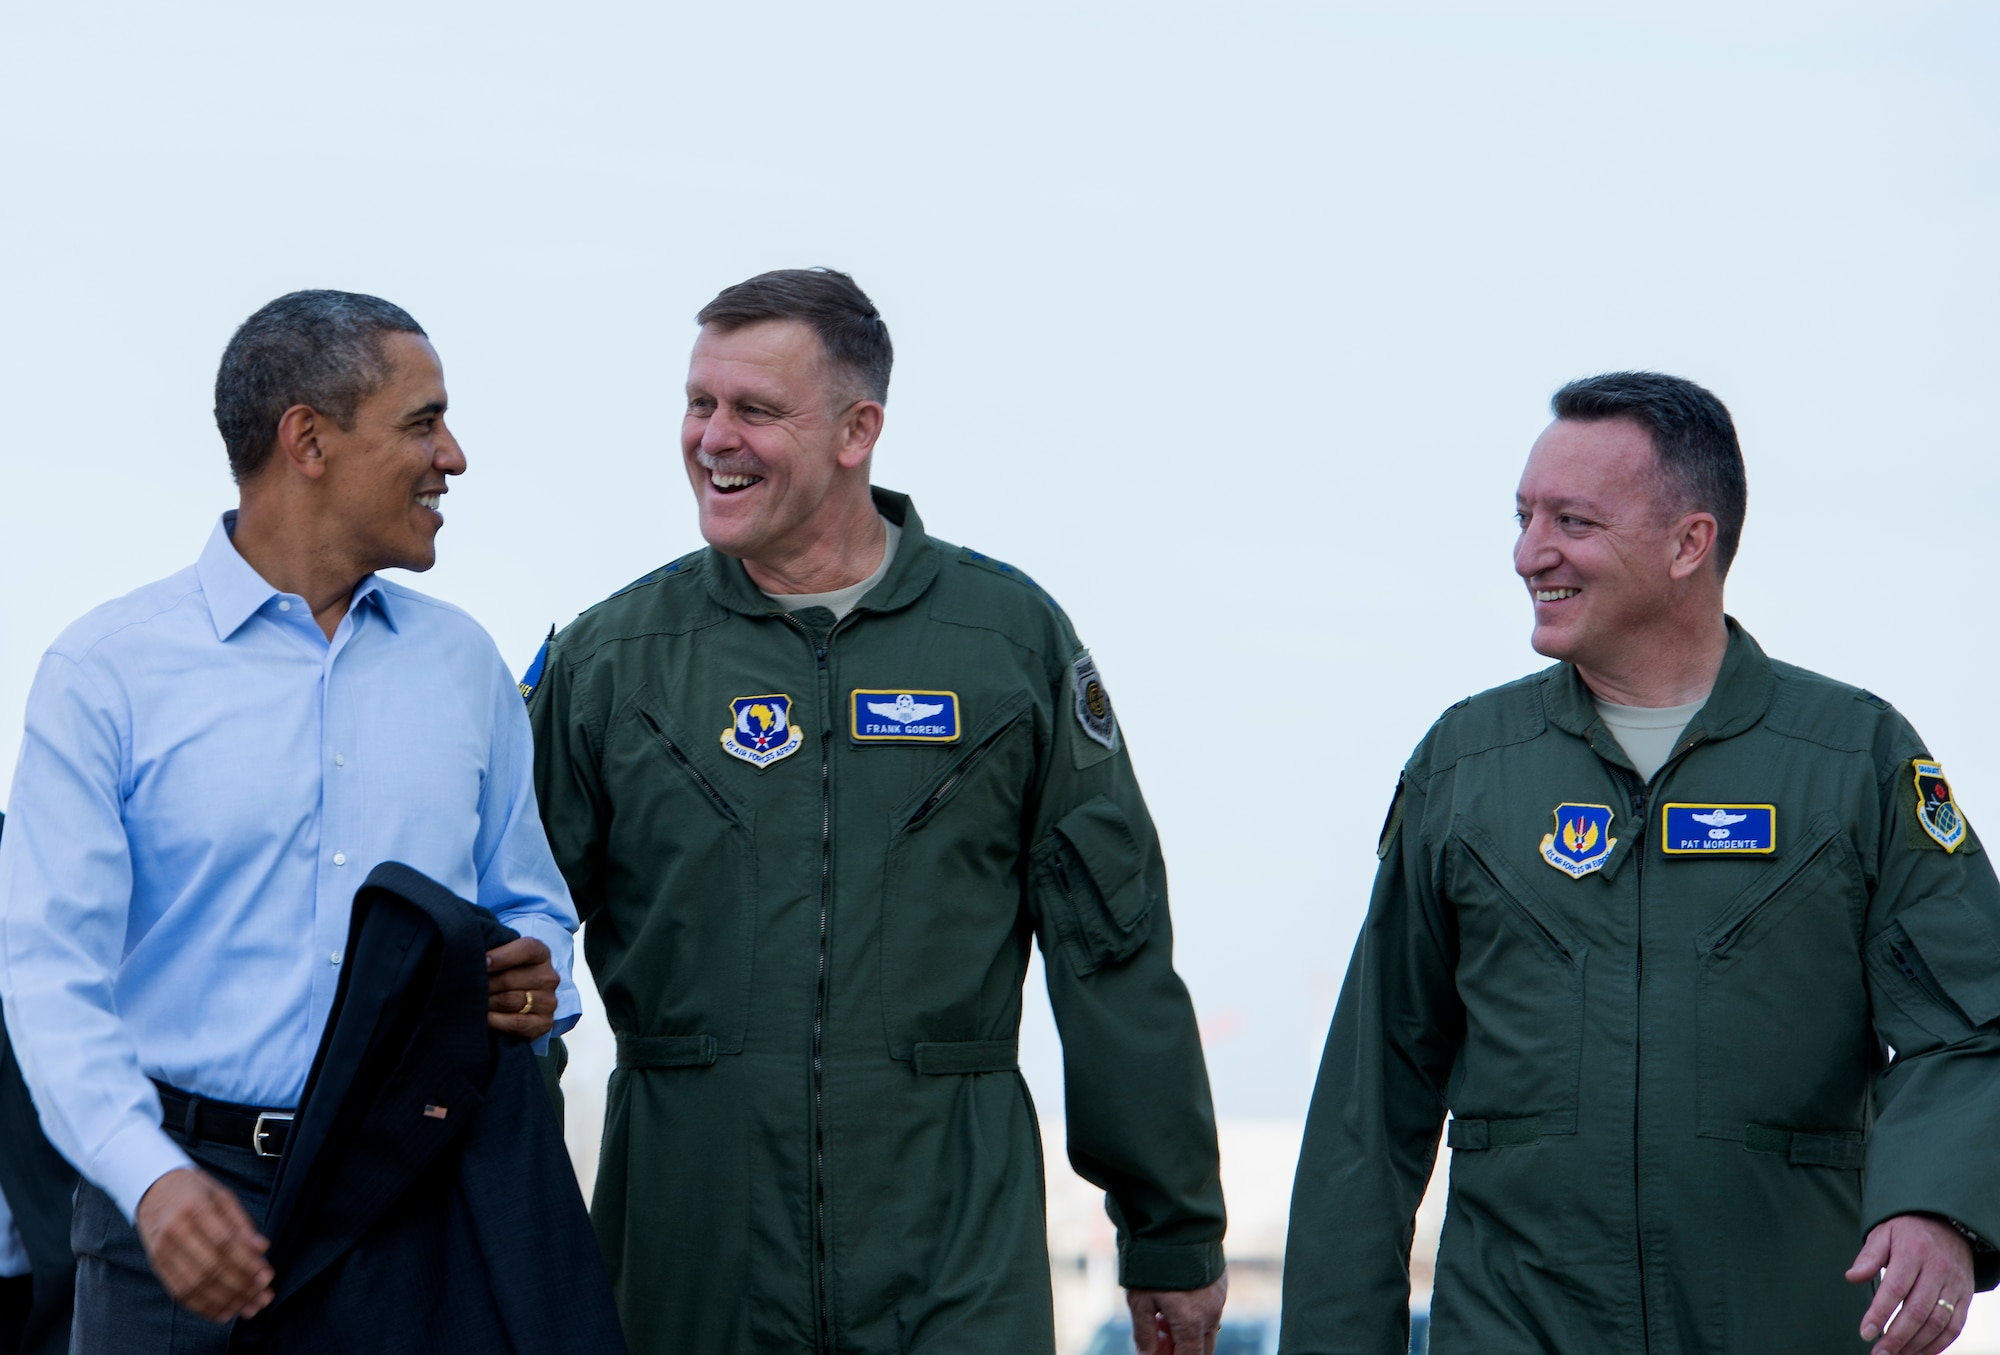 President Barack Obama speaks with Gen. Frank Gorenc (middle), U.S. Air Forces in Europe and Air Forces Africa commander and Brig. Gen. Patrick X. Mordente, 86th Airlift Wing commander, March 29, 2014, at Ramstein Air Base, Germany. During his stop, Obama visited wounded warriors from Landstuhl Regional Medical Center. (U.S. Air Force photo/Senior Airman Damon Kasberg)